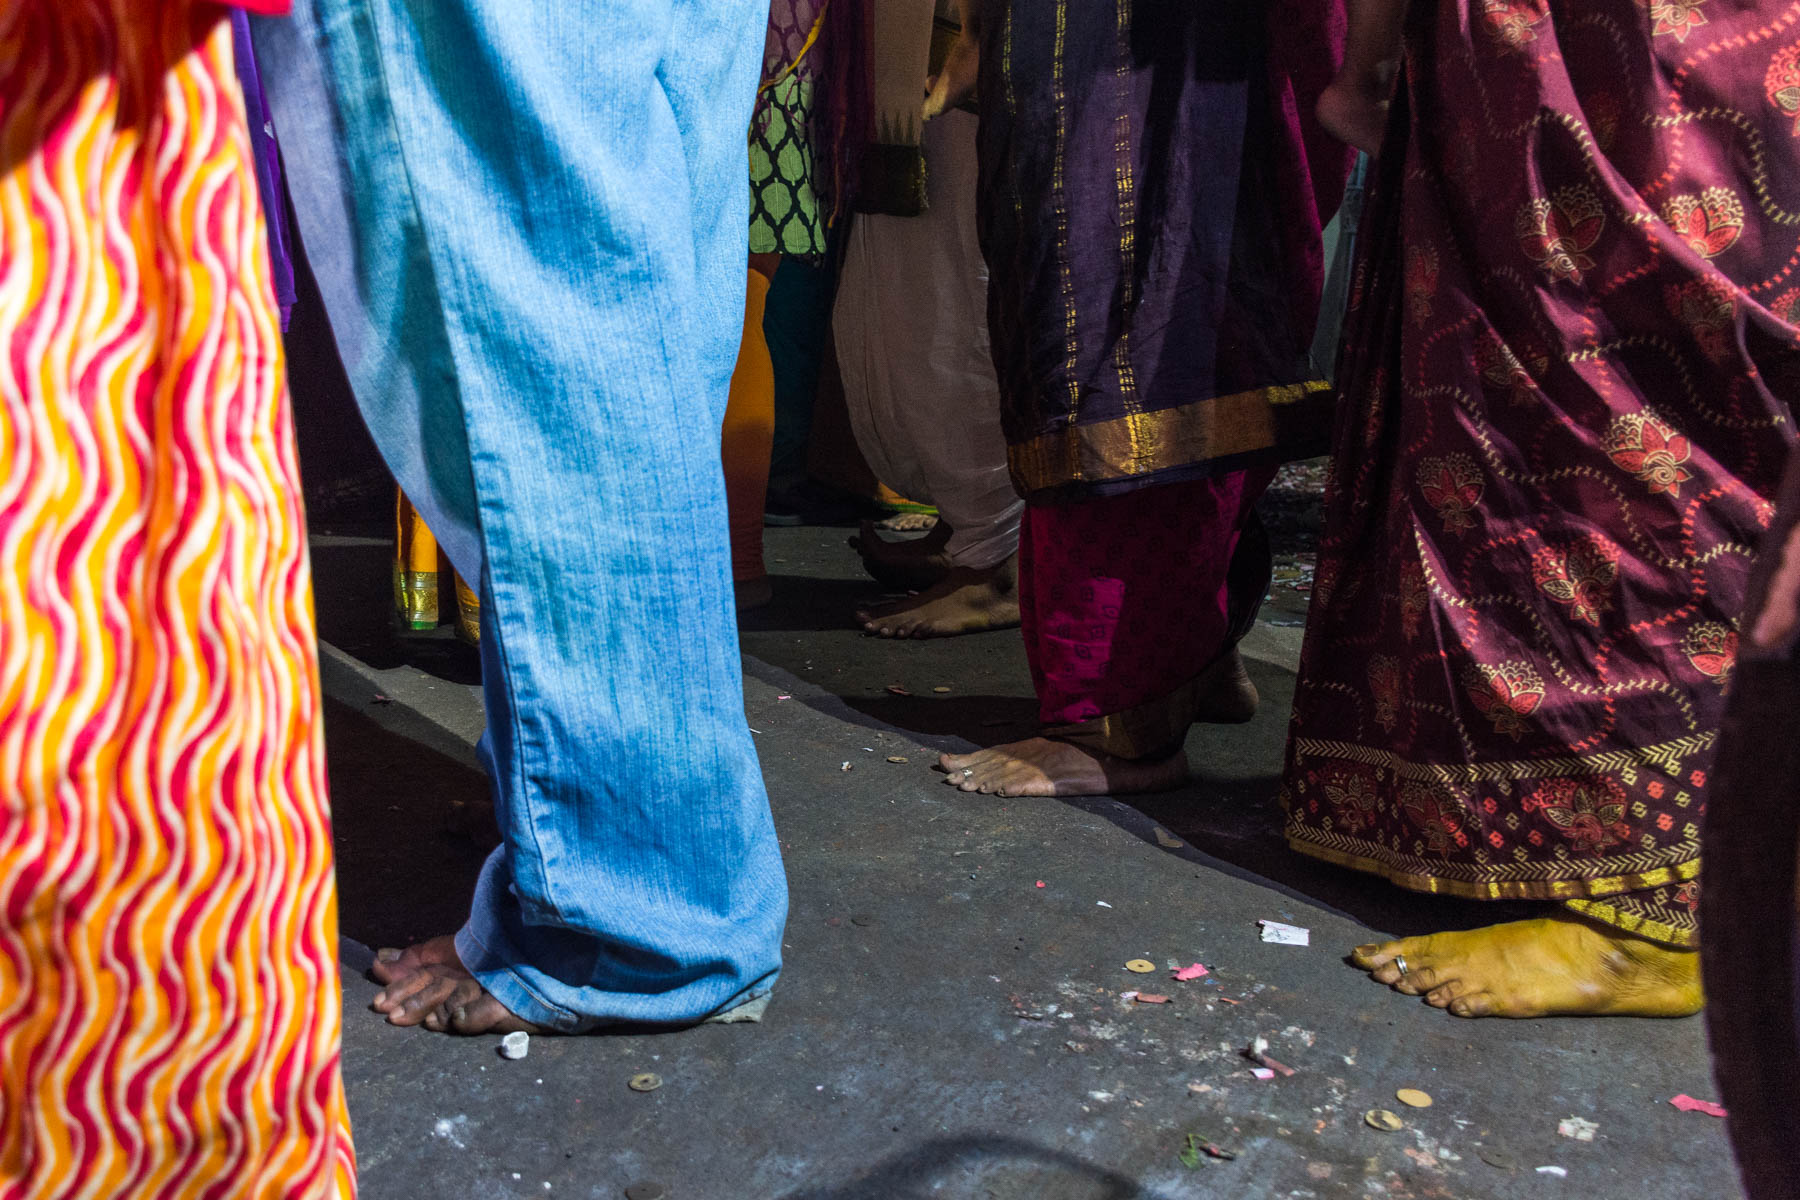 Barefoot onlookers celebrating Diwali in Chennai, India - Lost With Purpose